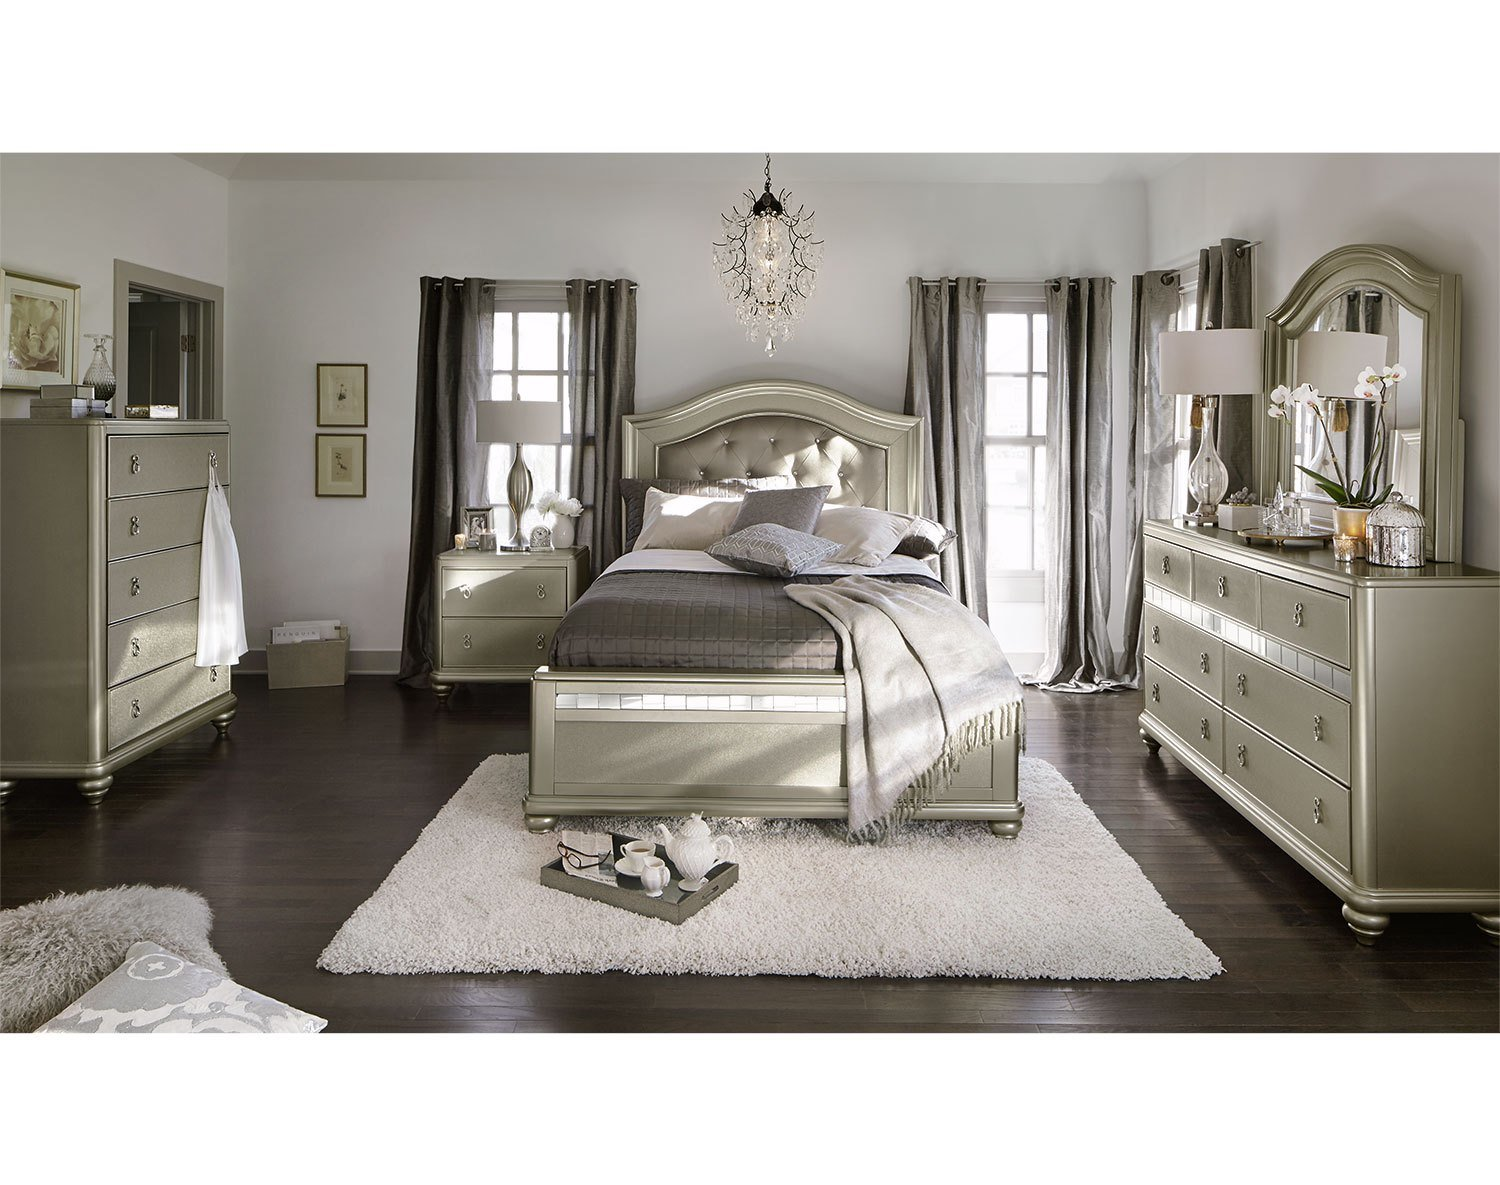 Best King Size Bedroom Sets Under 500 Zorginnovisie With Pictures